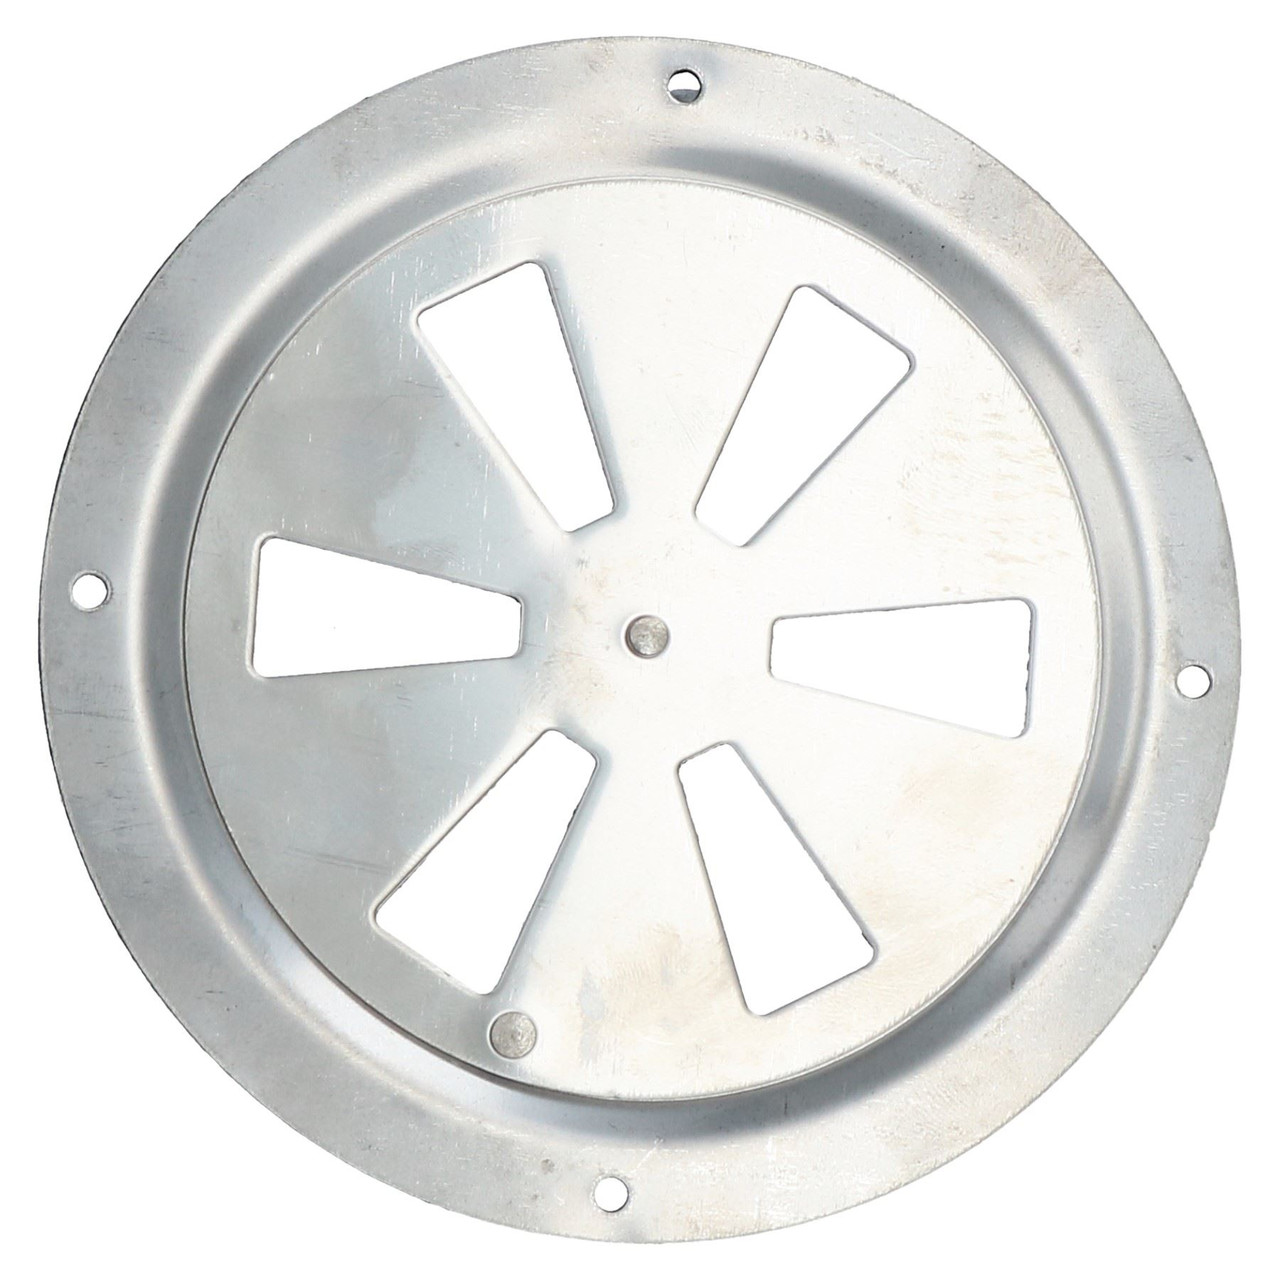 Air Vent Ventilator Grill Round Closeable Polished Stainless Steel Marine Grade